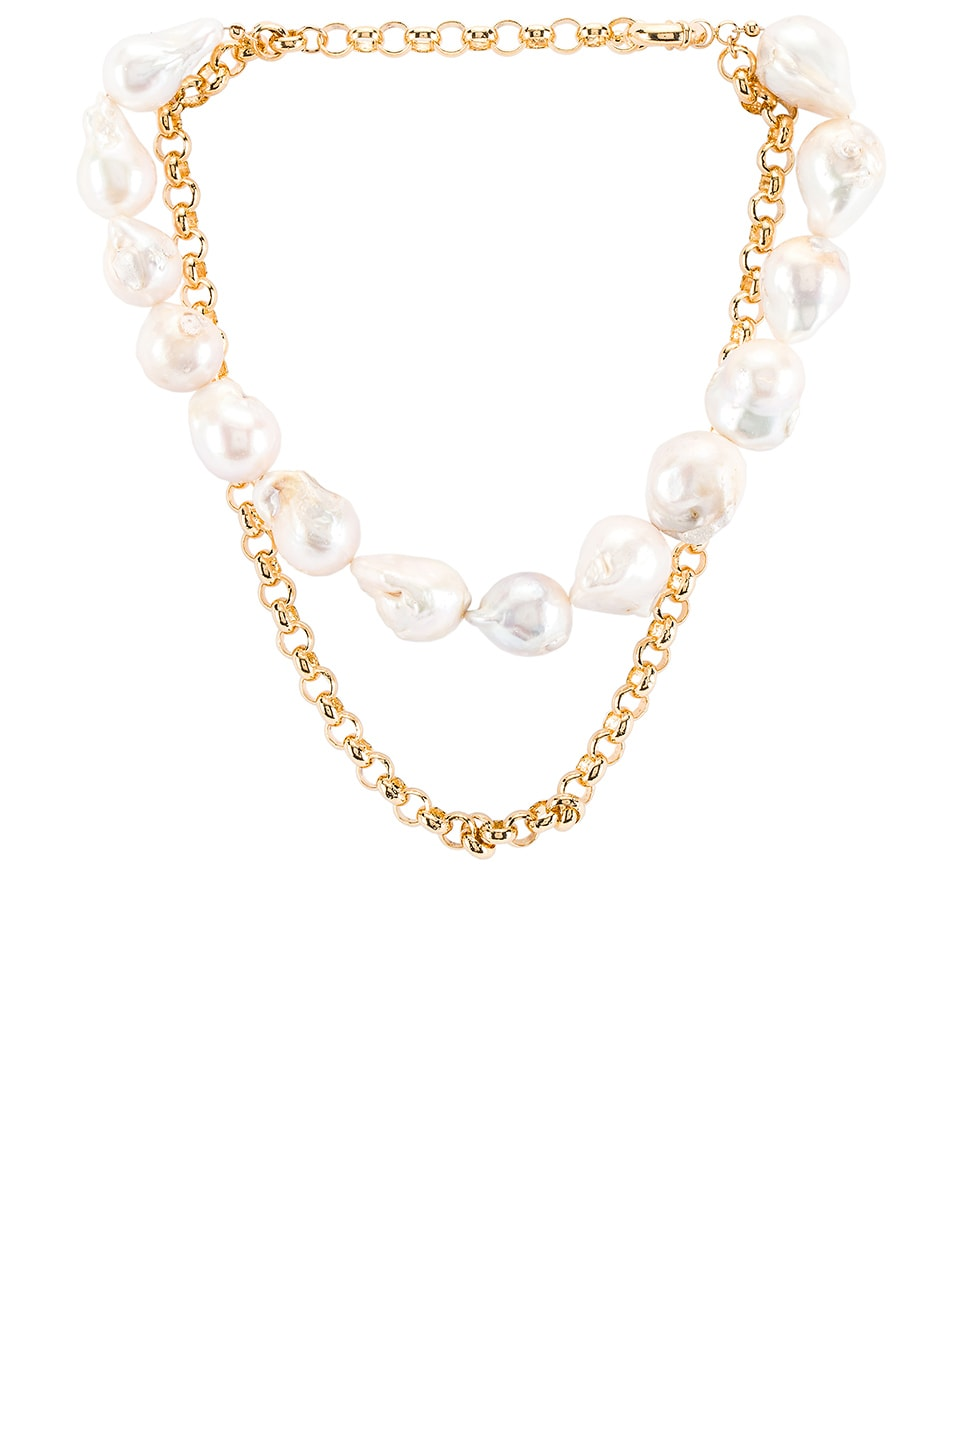 joolz by Martha Calvo Full Spectrum Necklace Set in Gold